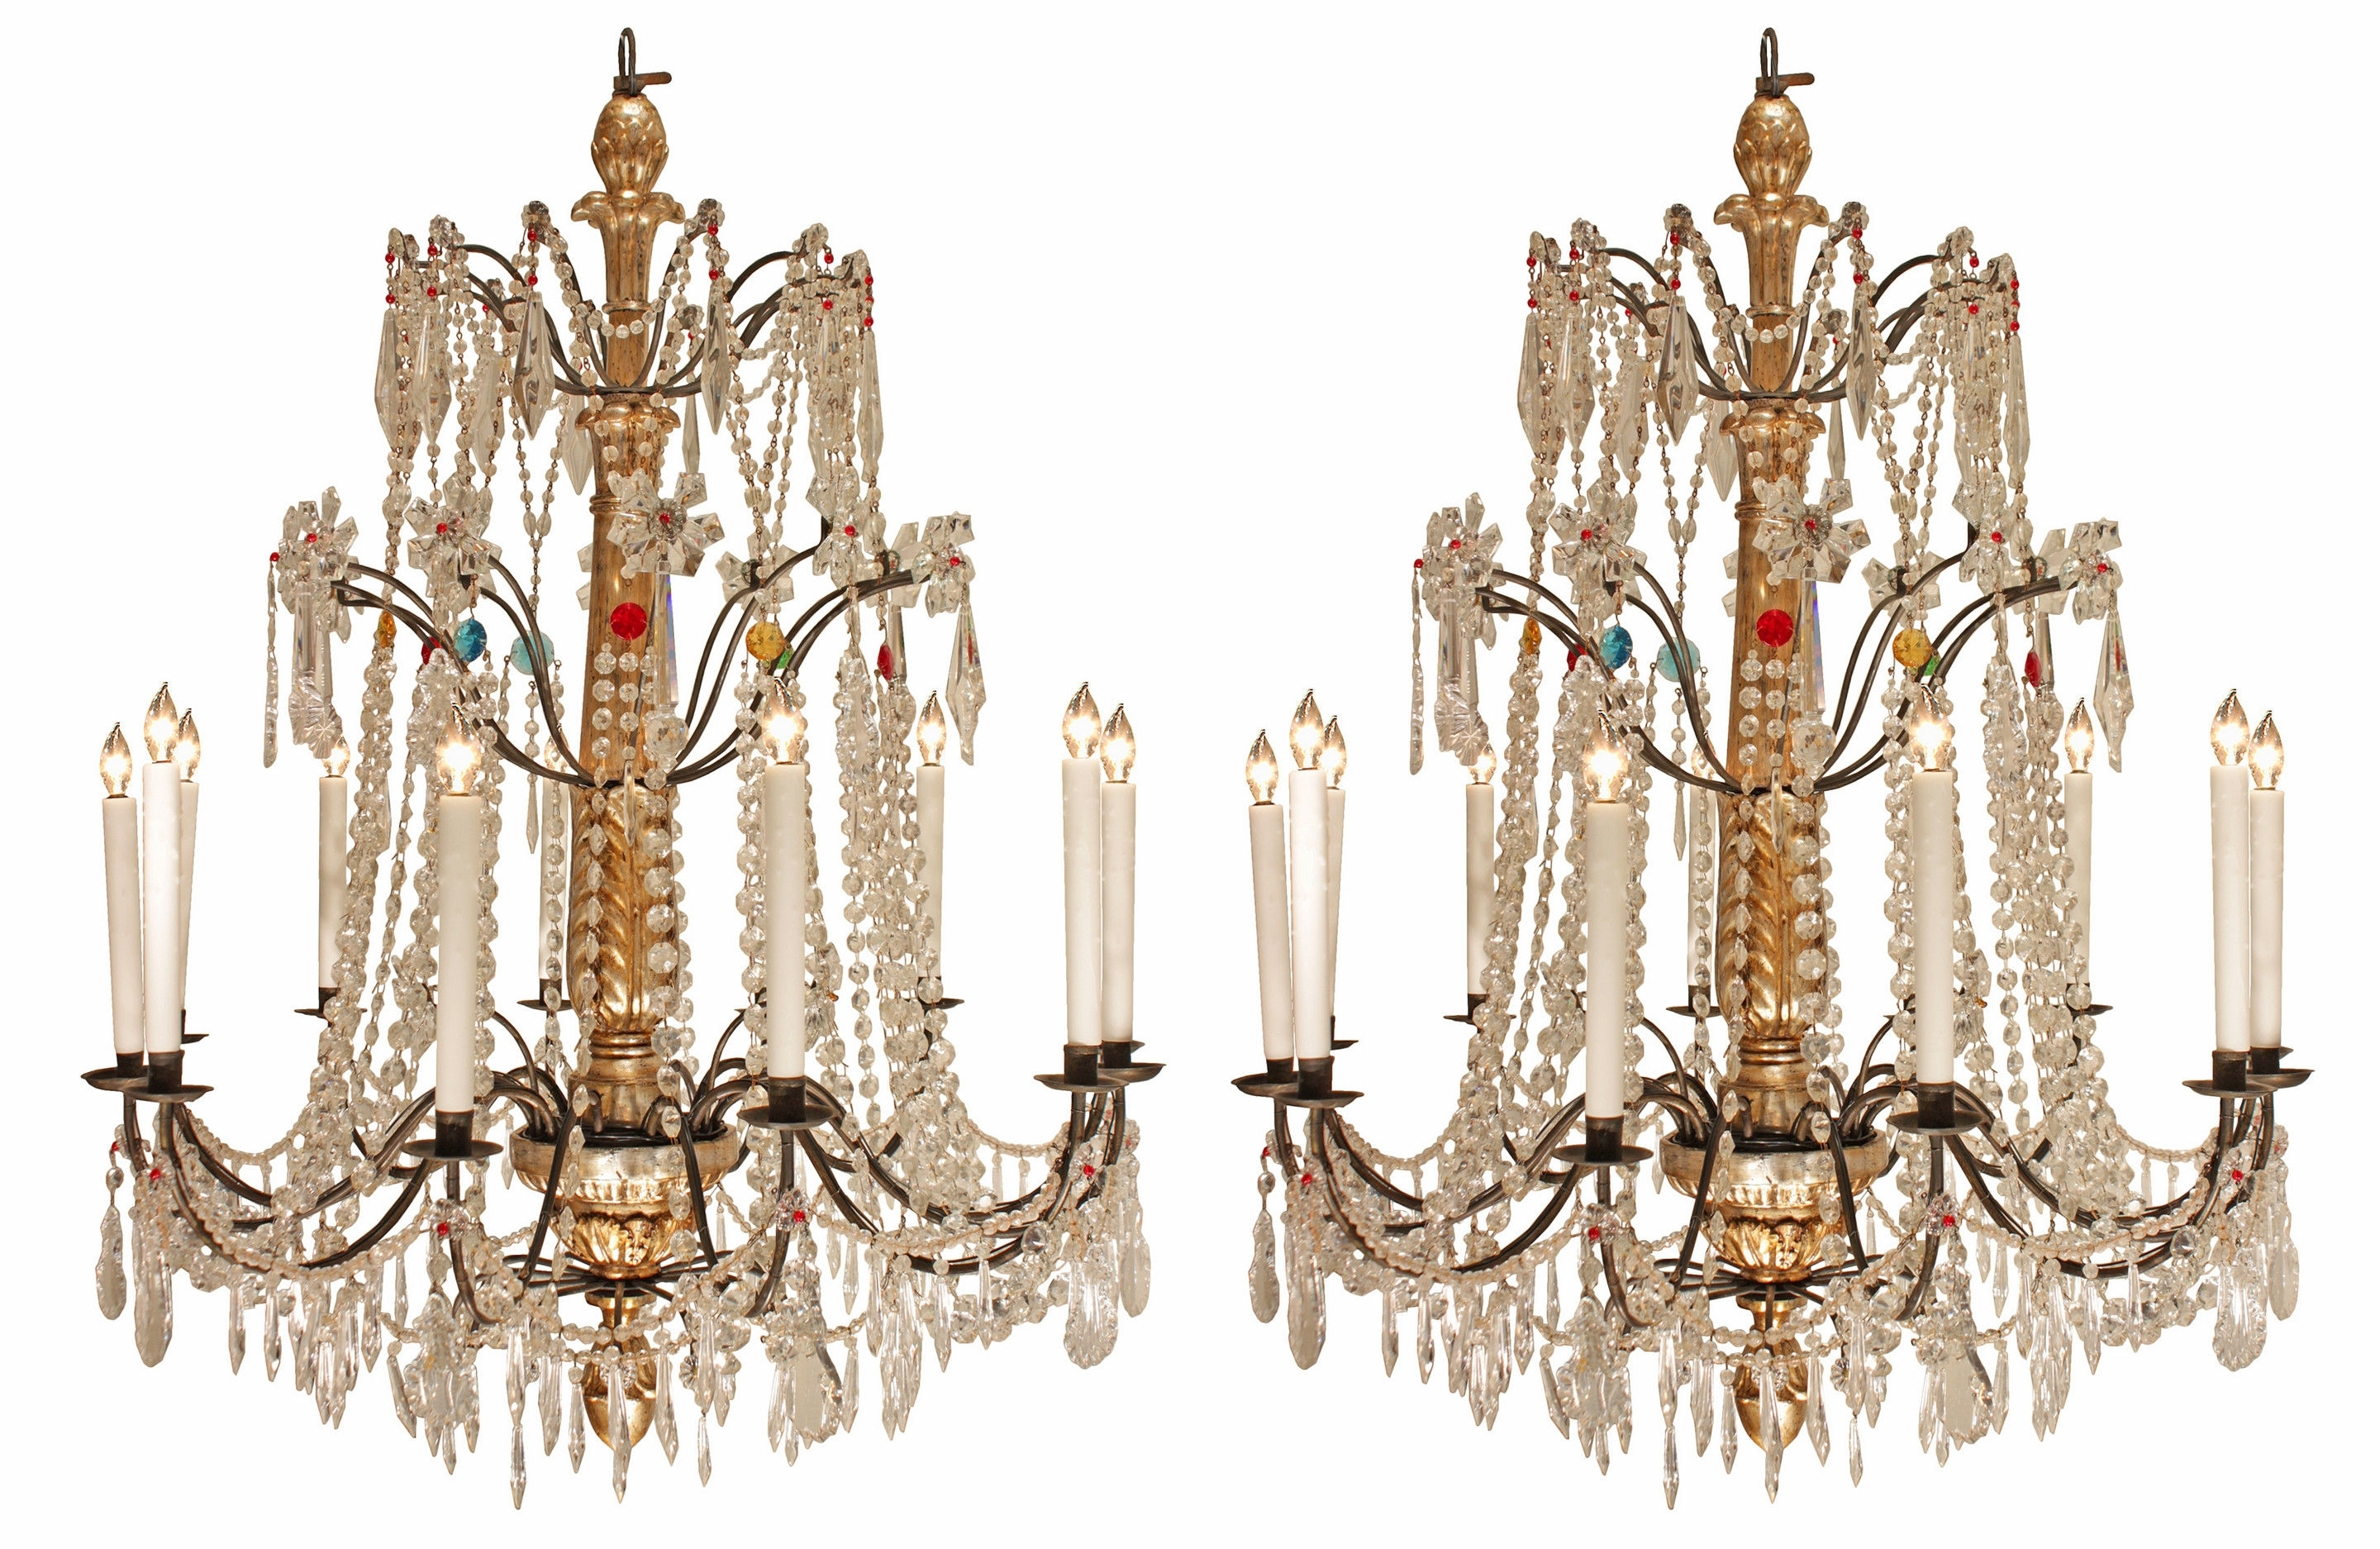 Italian Chandeliers Within Recent A Pair Of Early 19Th Century Italian Chandeliers (1800 To 1850 Italy (View 11 of 20)